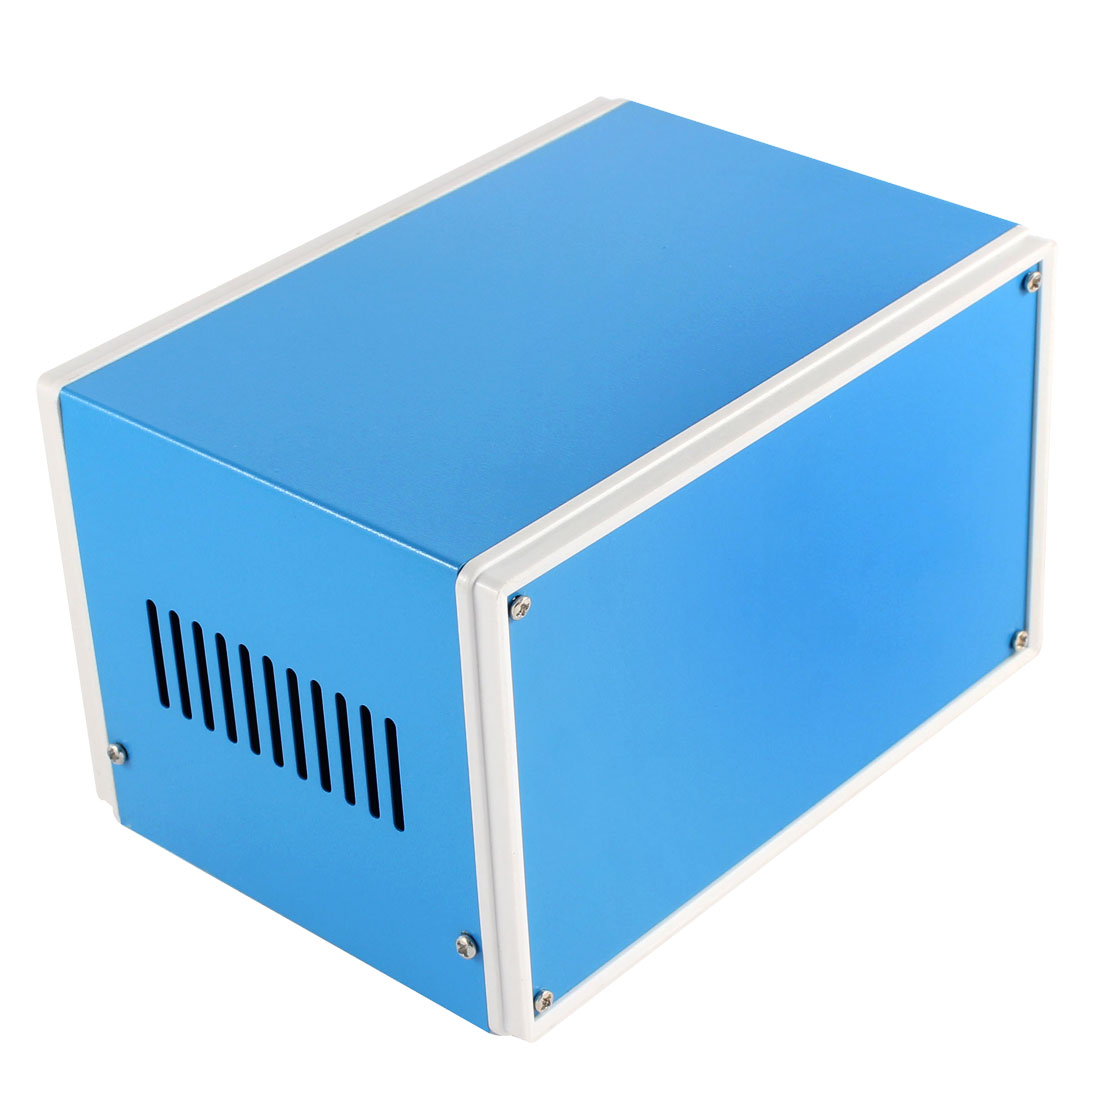 Blue Electronic Project Junction Box Enclosure Shell Case 175 x 128 x 108mm